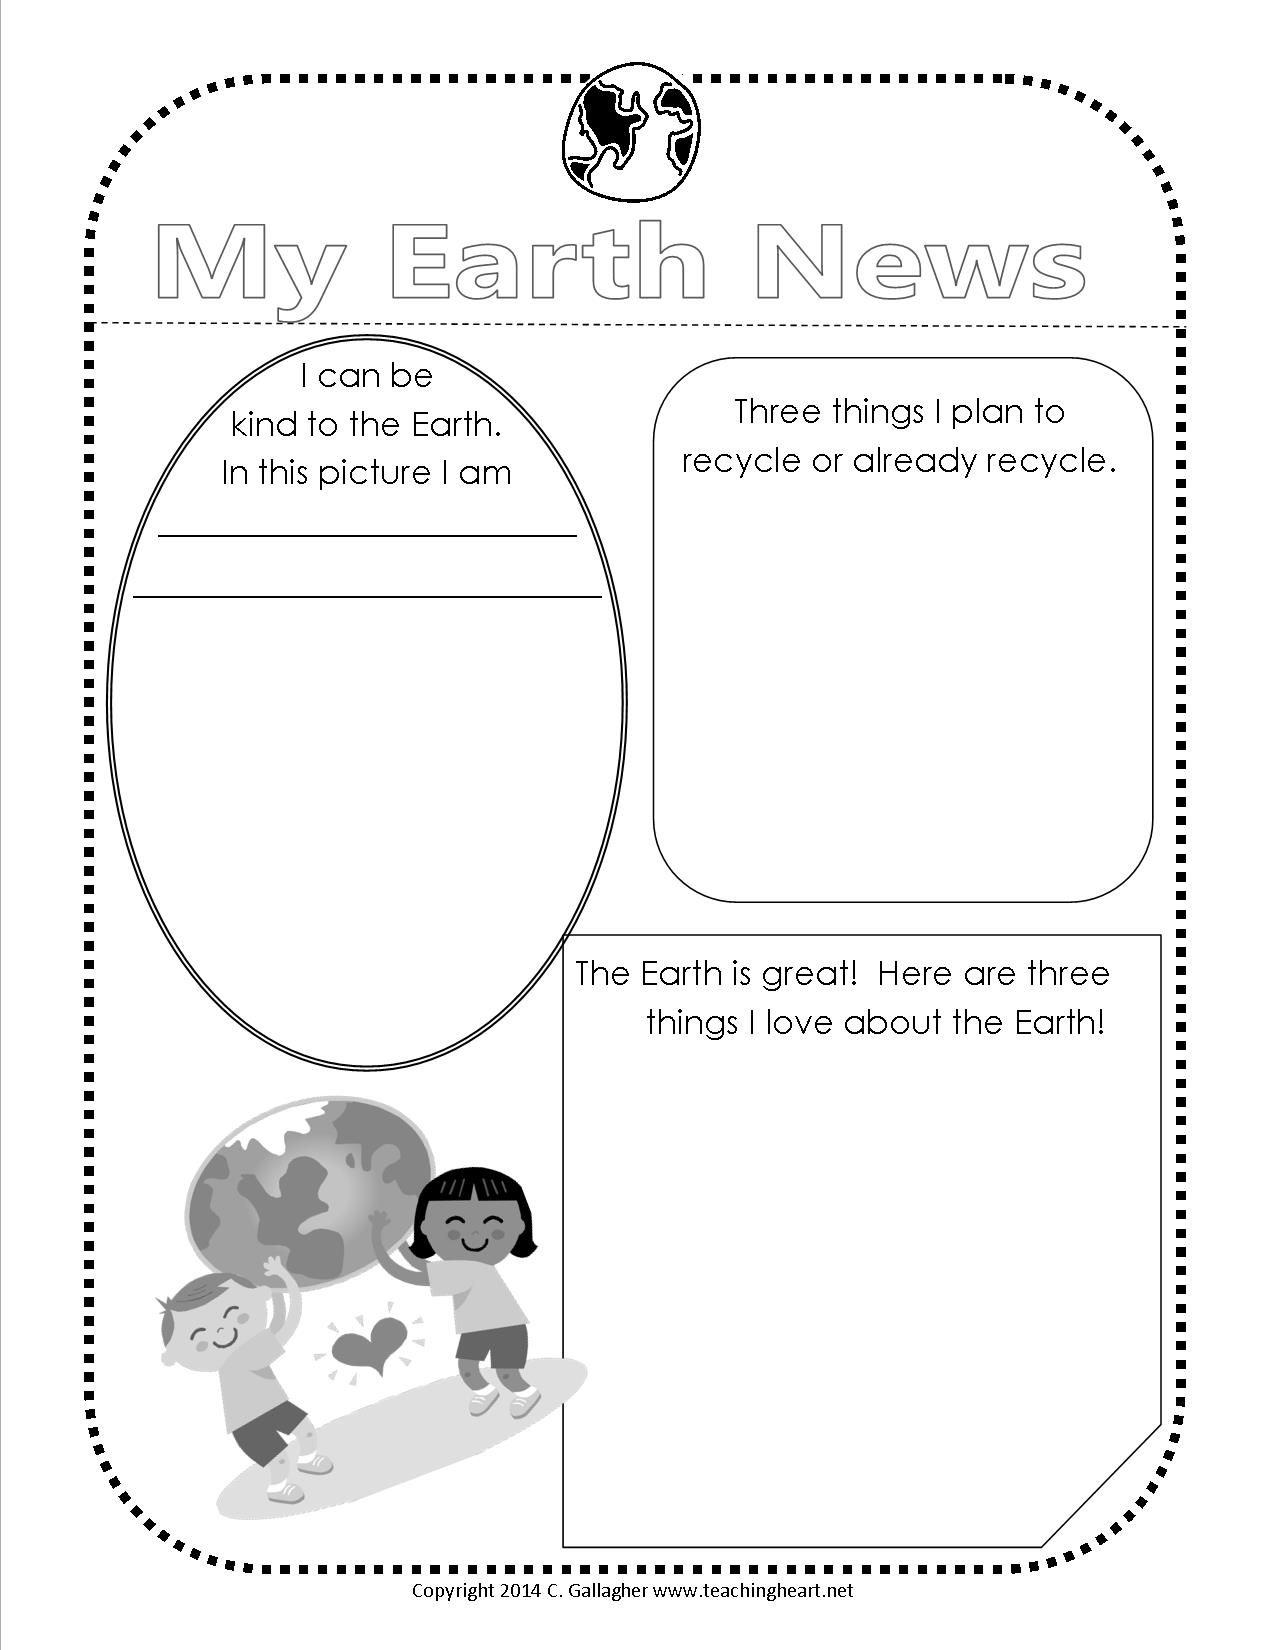 worksheet Earth Day Worksheet earth day 2014 free printable and teaching heart blog